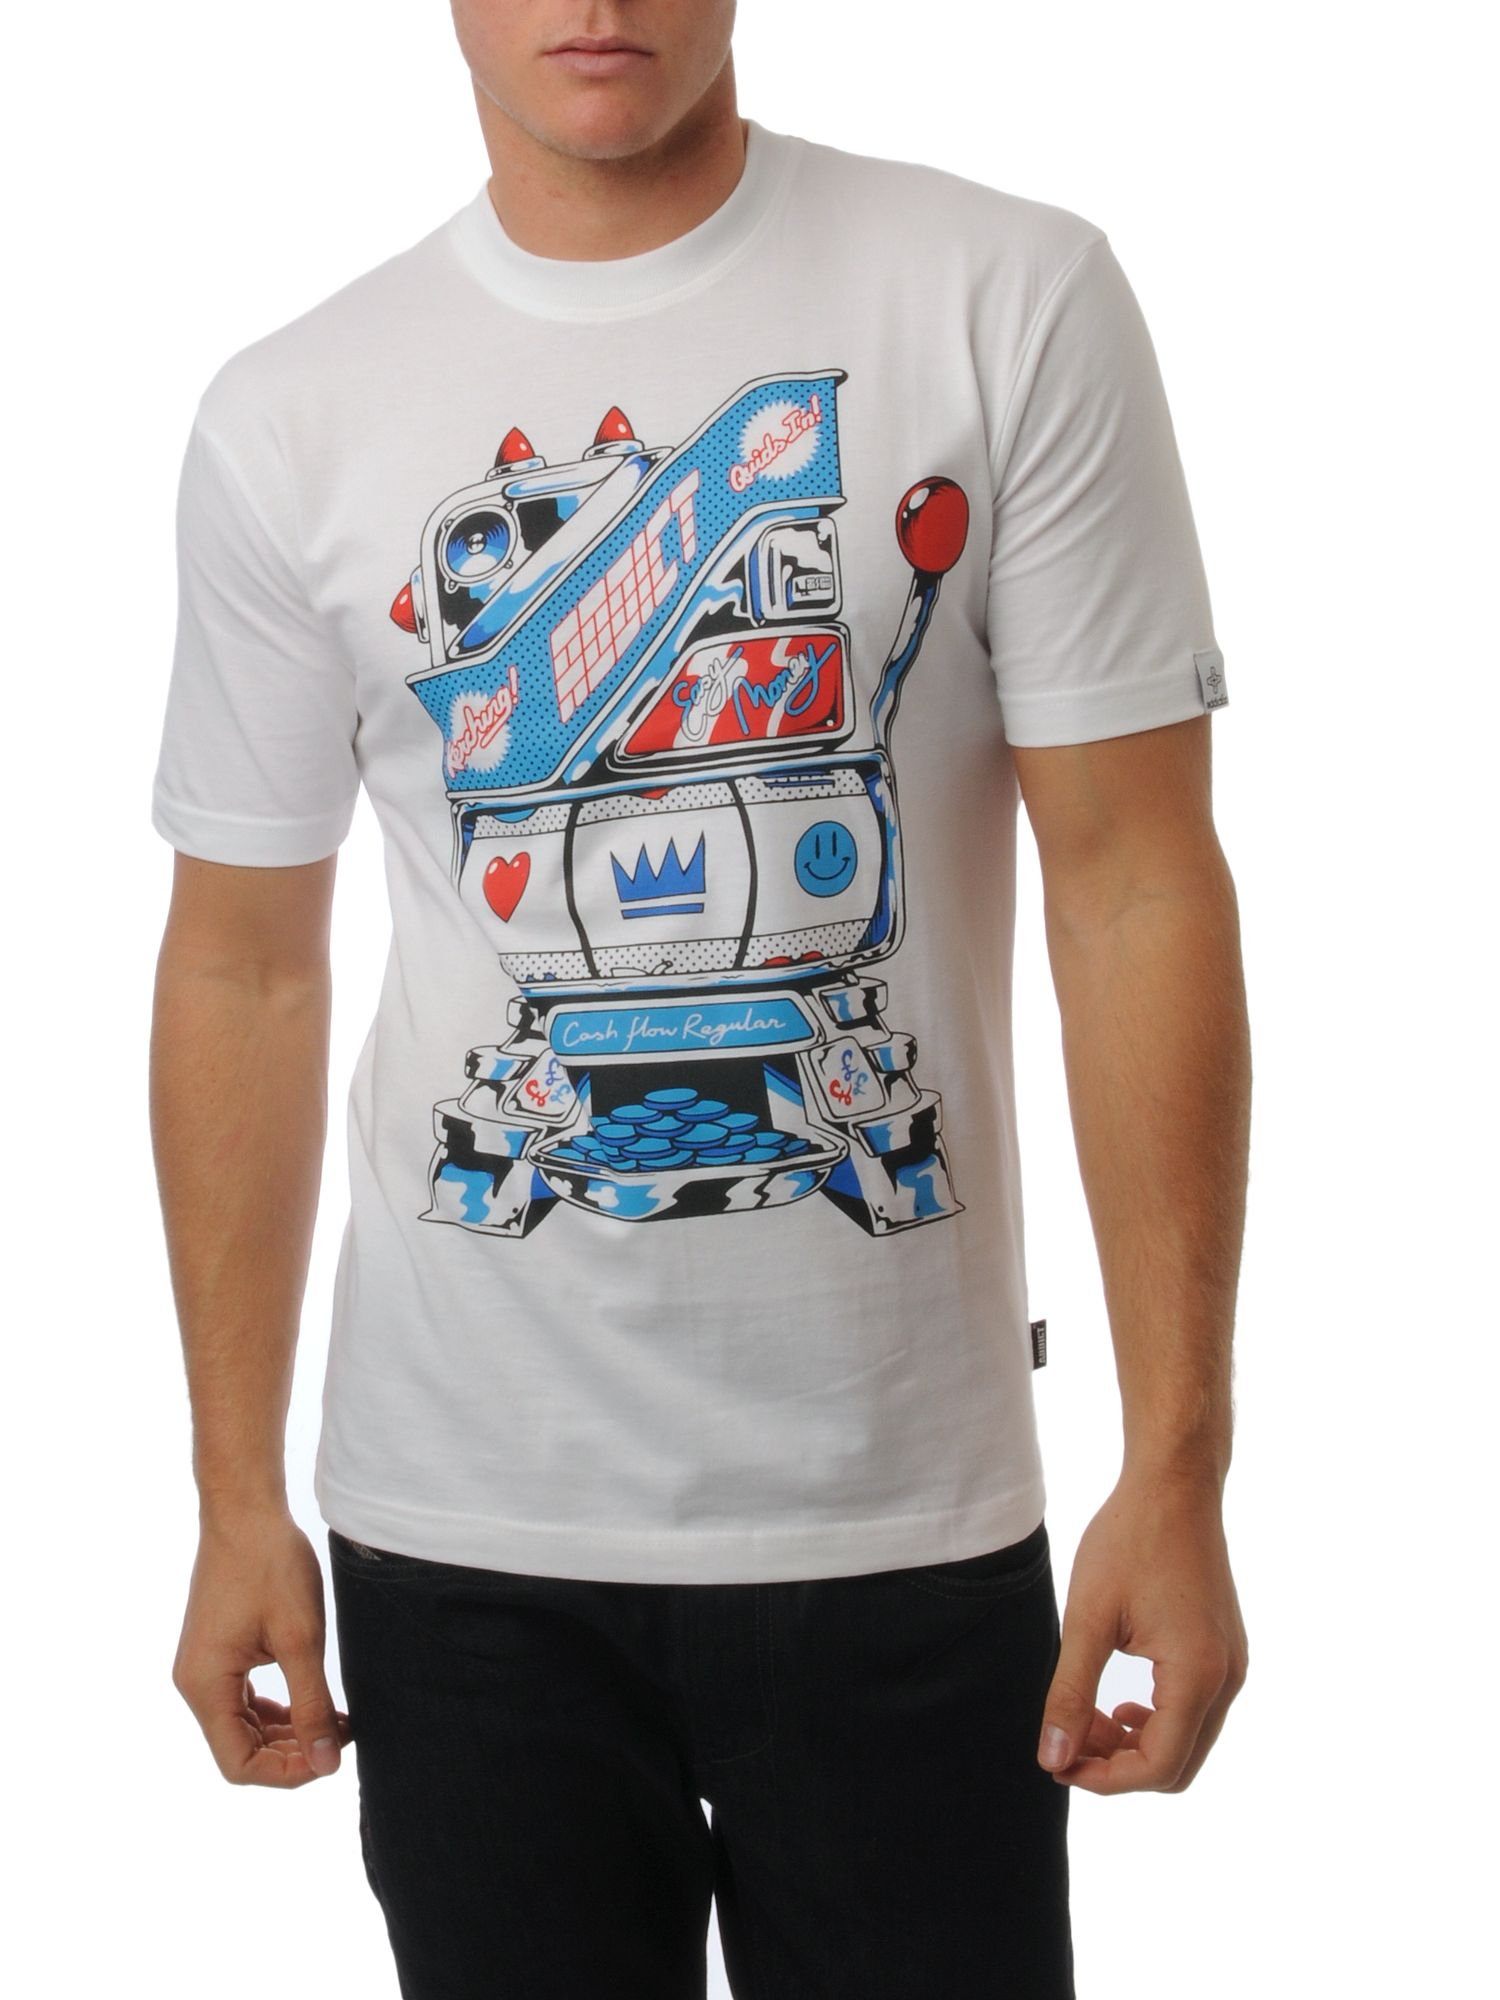 Addict Pinball logo t-shirt White product image